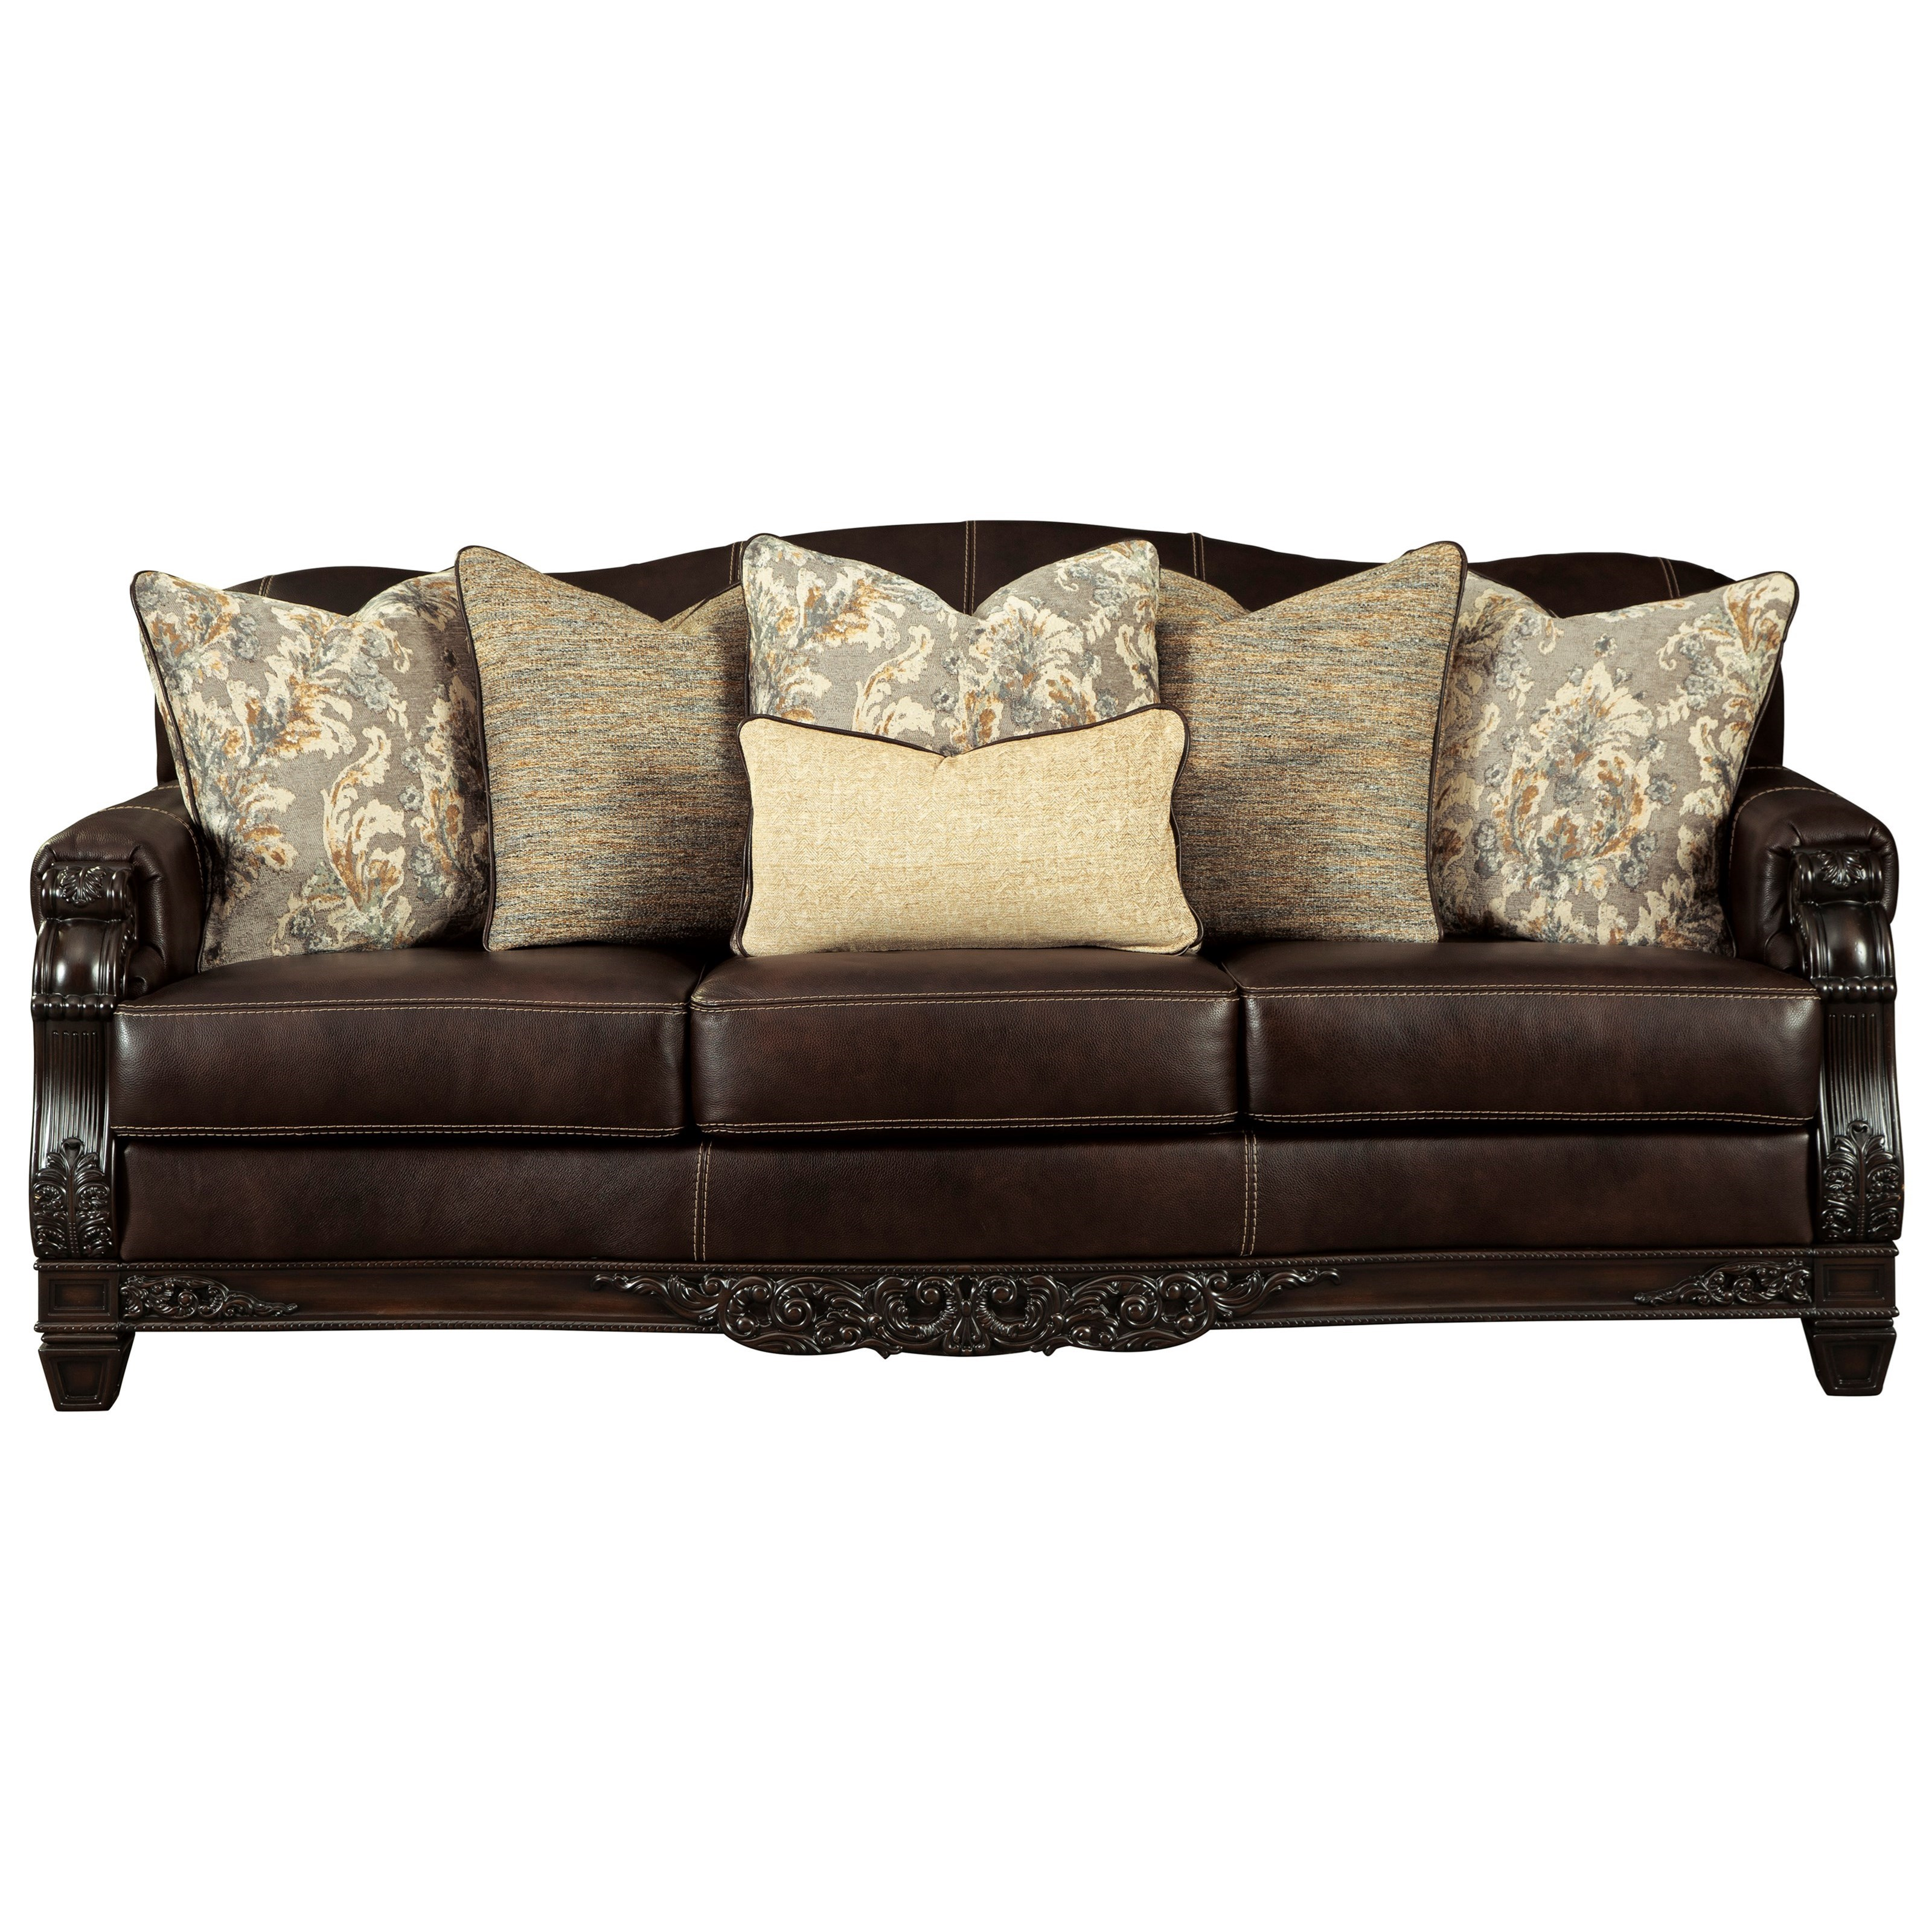 Embrook Sofa by Signature Design by Ashley at Lapeer Furniture & Mattress Center